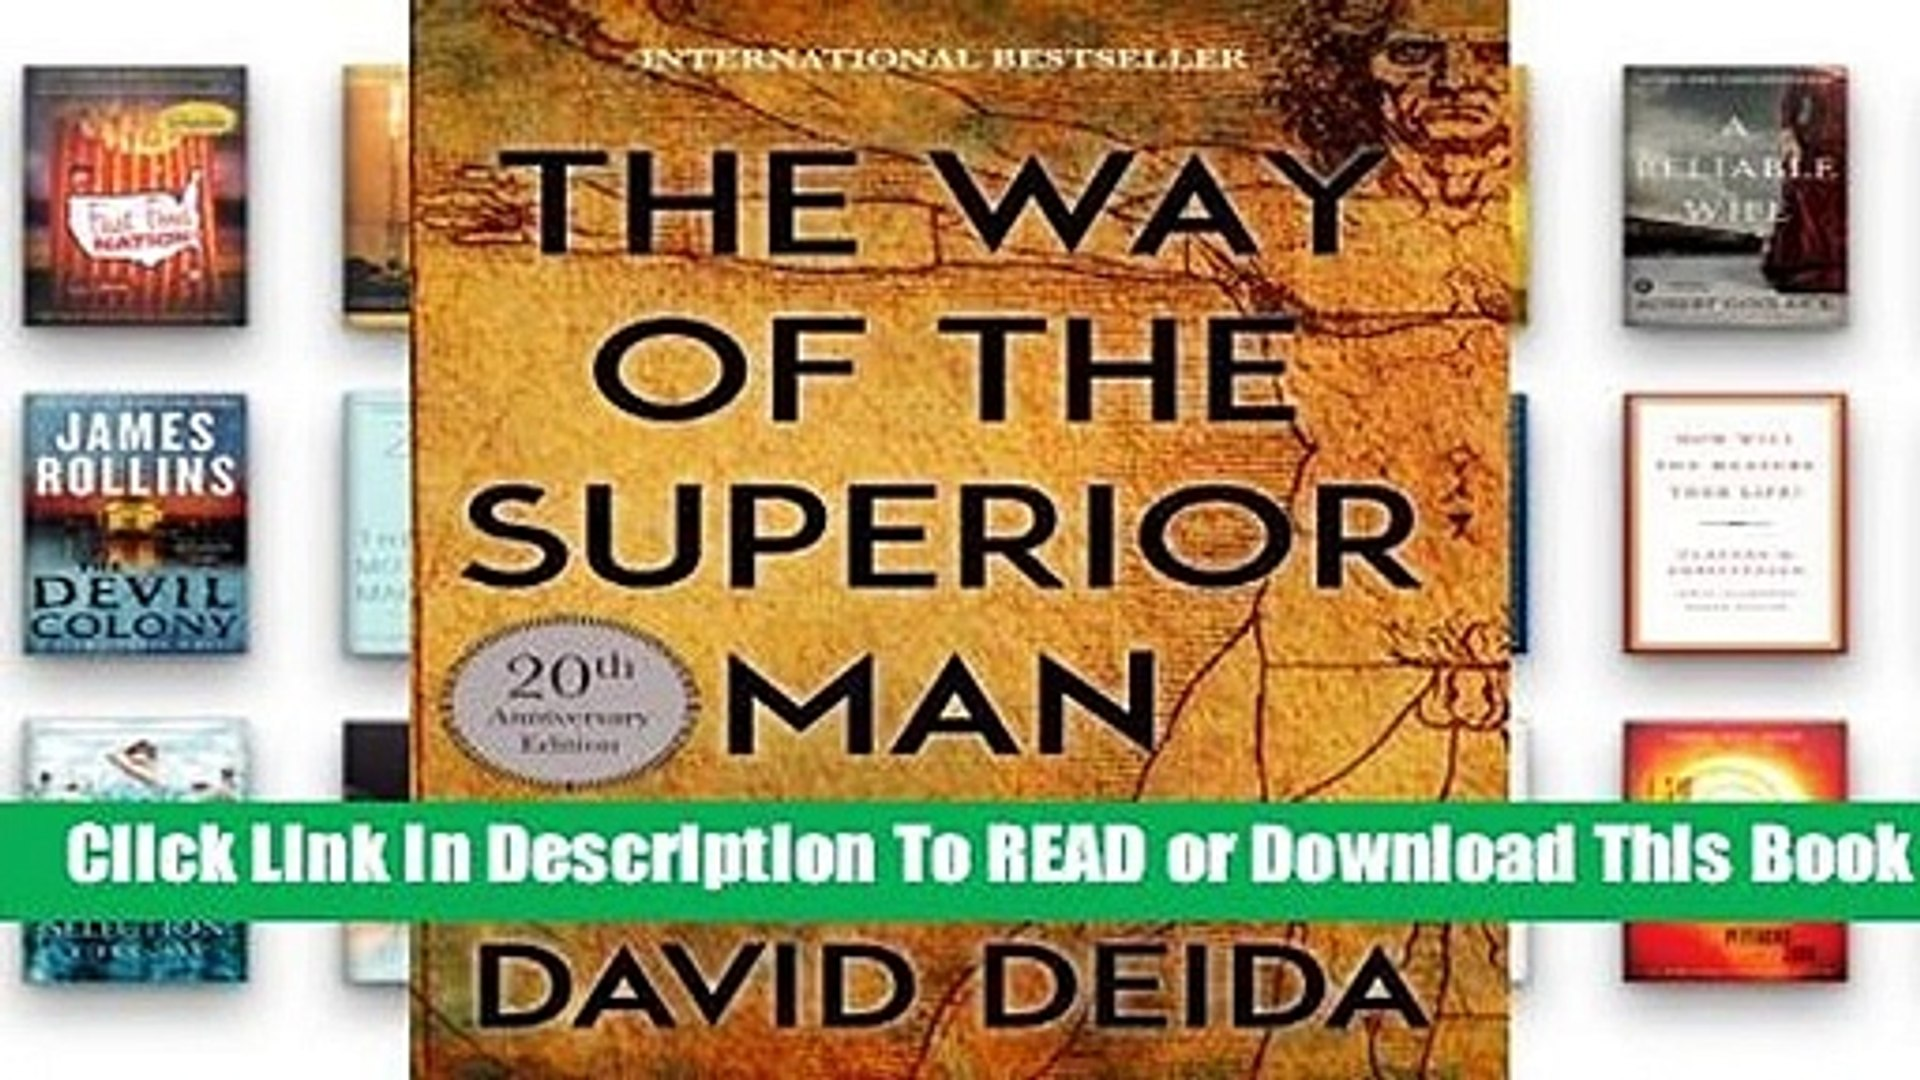 About For Books  The Way of the Superior Man: A Spiritual Guide to Mastering the Challenges of